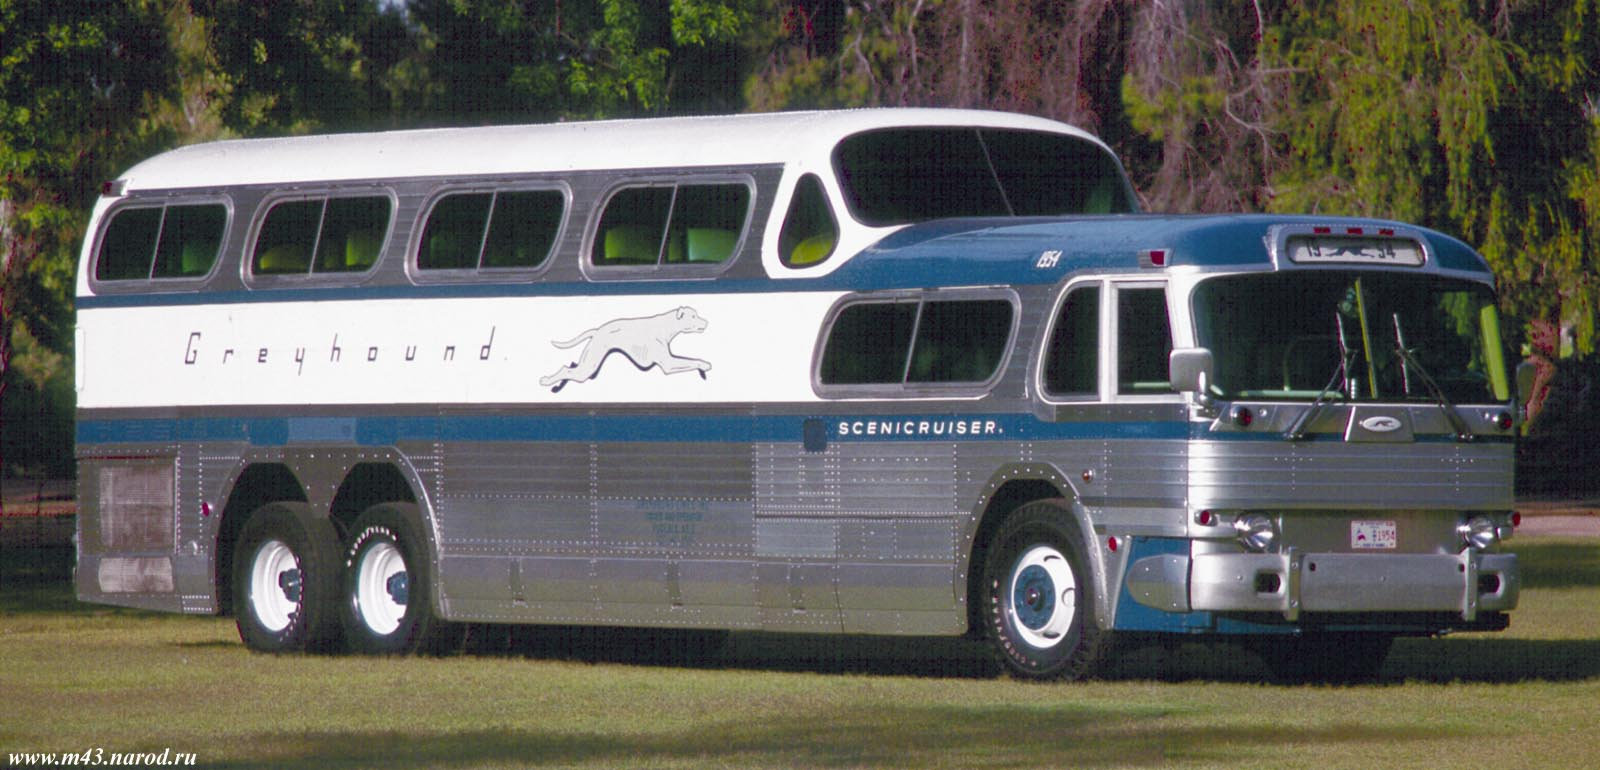 greyhound_scenicruiser_03_large.JPG